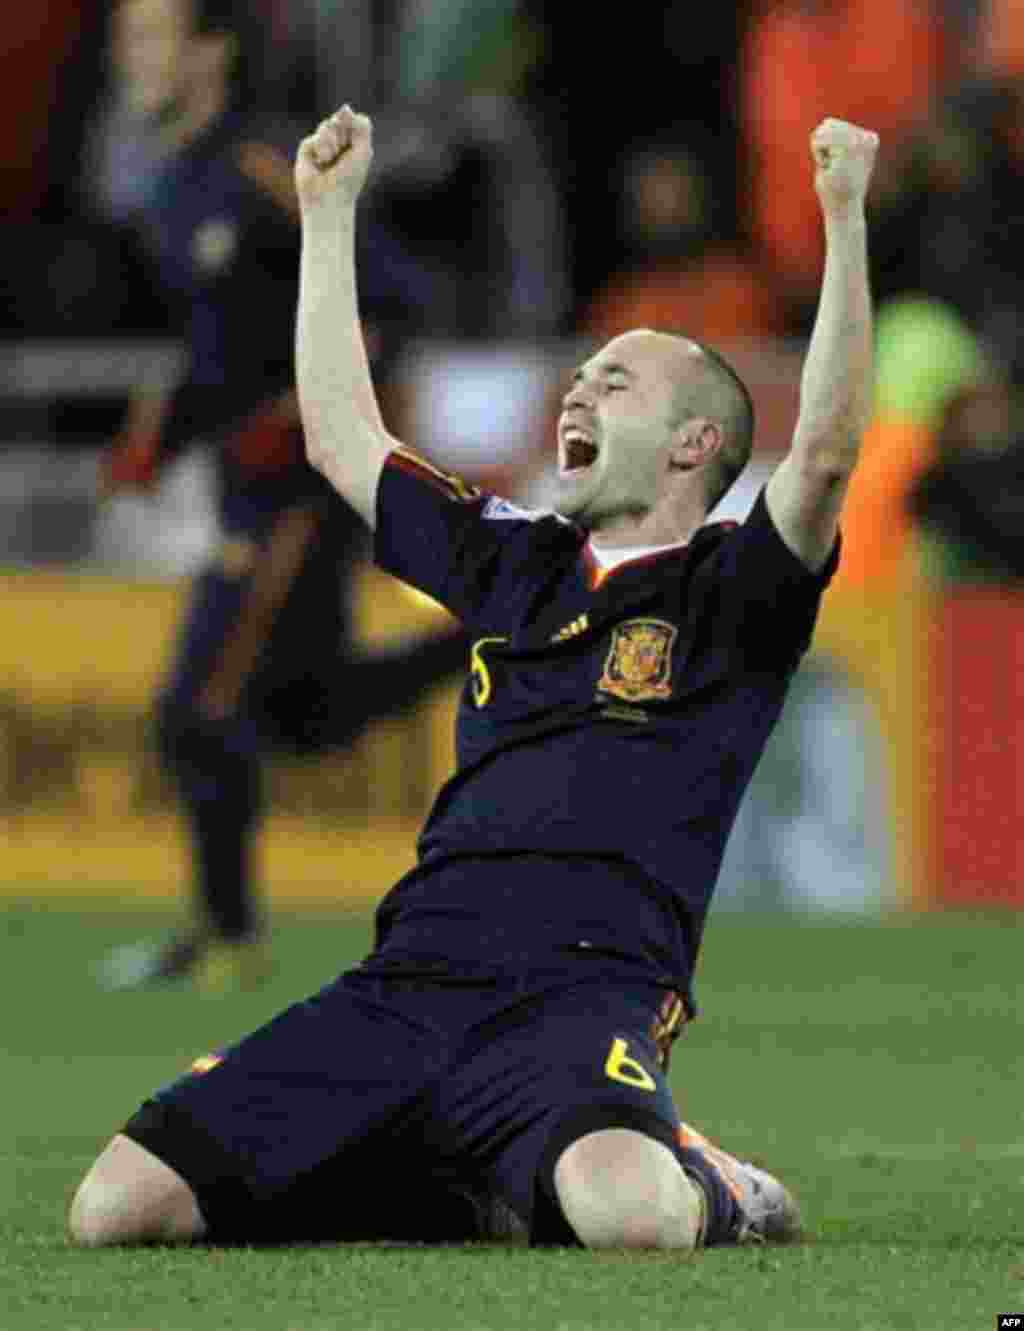 Spain's Andres Iniesta celebrates after scoring a goal during the World Cup final soccer match between the Netherlands and Spain at Soccer City in Johannesburg, South Africa, Sunday, July 11, 2010. Spain won 1-0. (AP Photo/Matt Dunham)